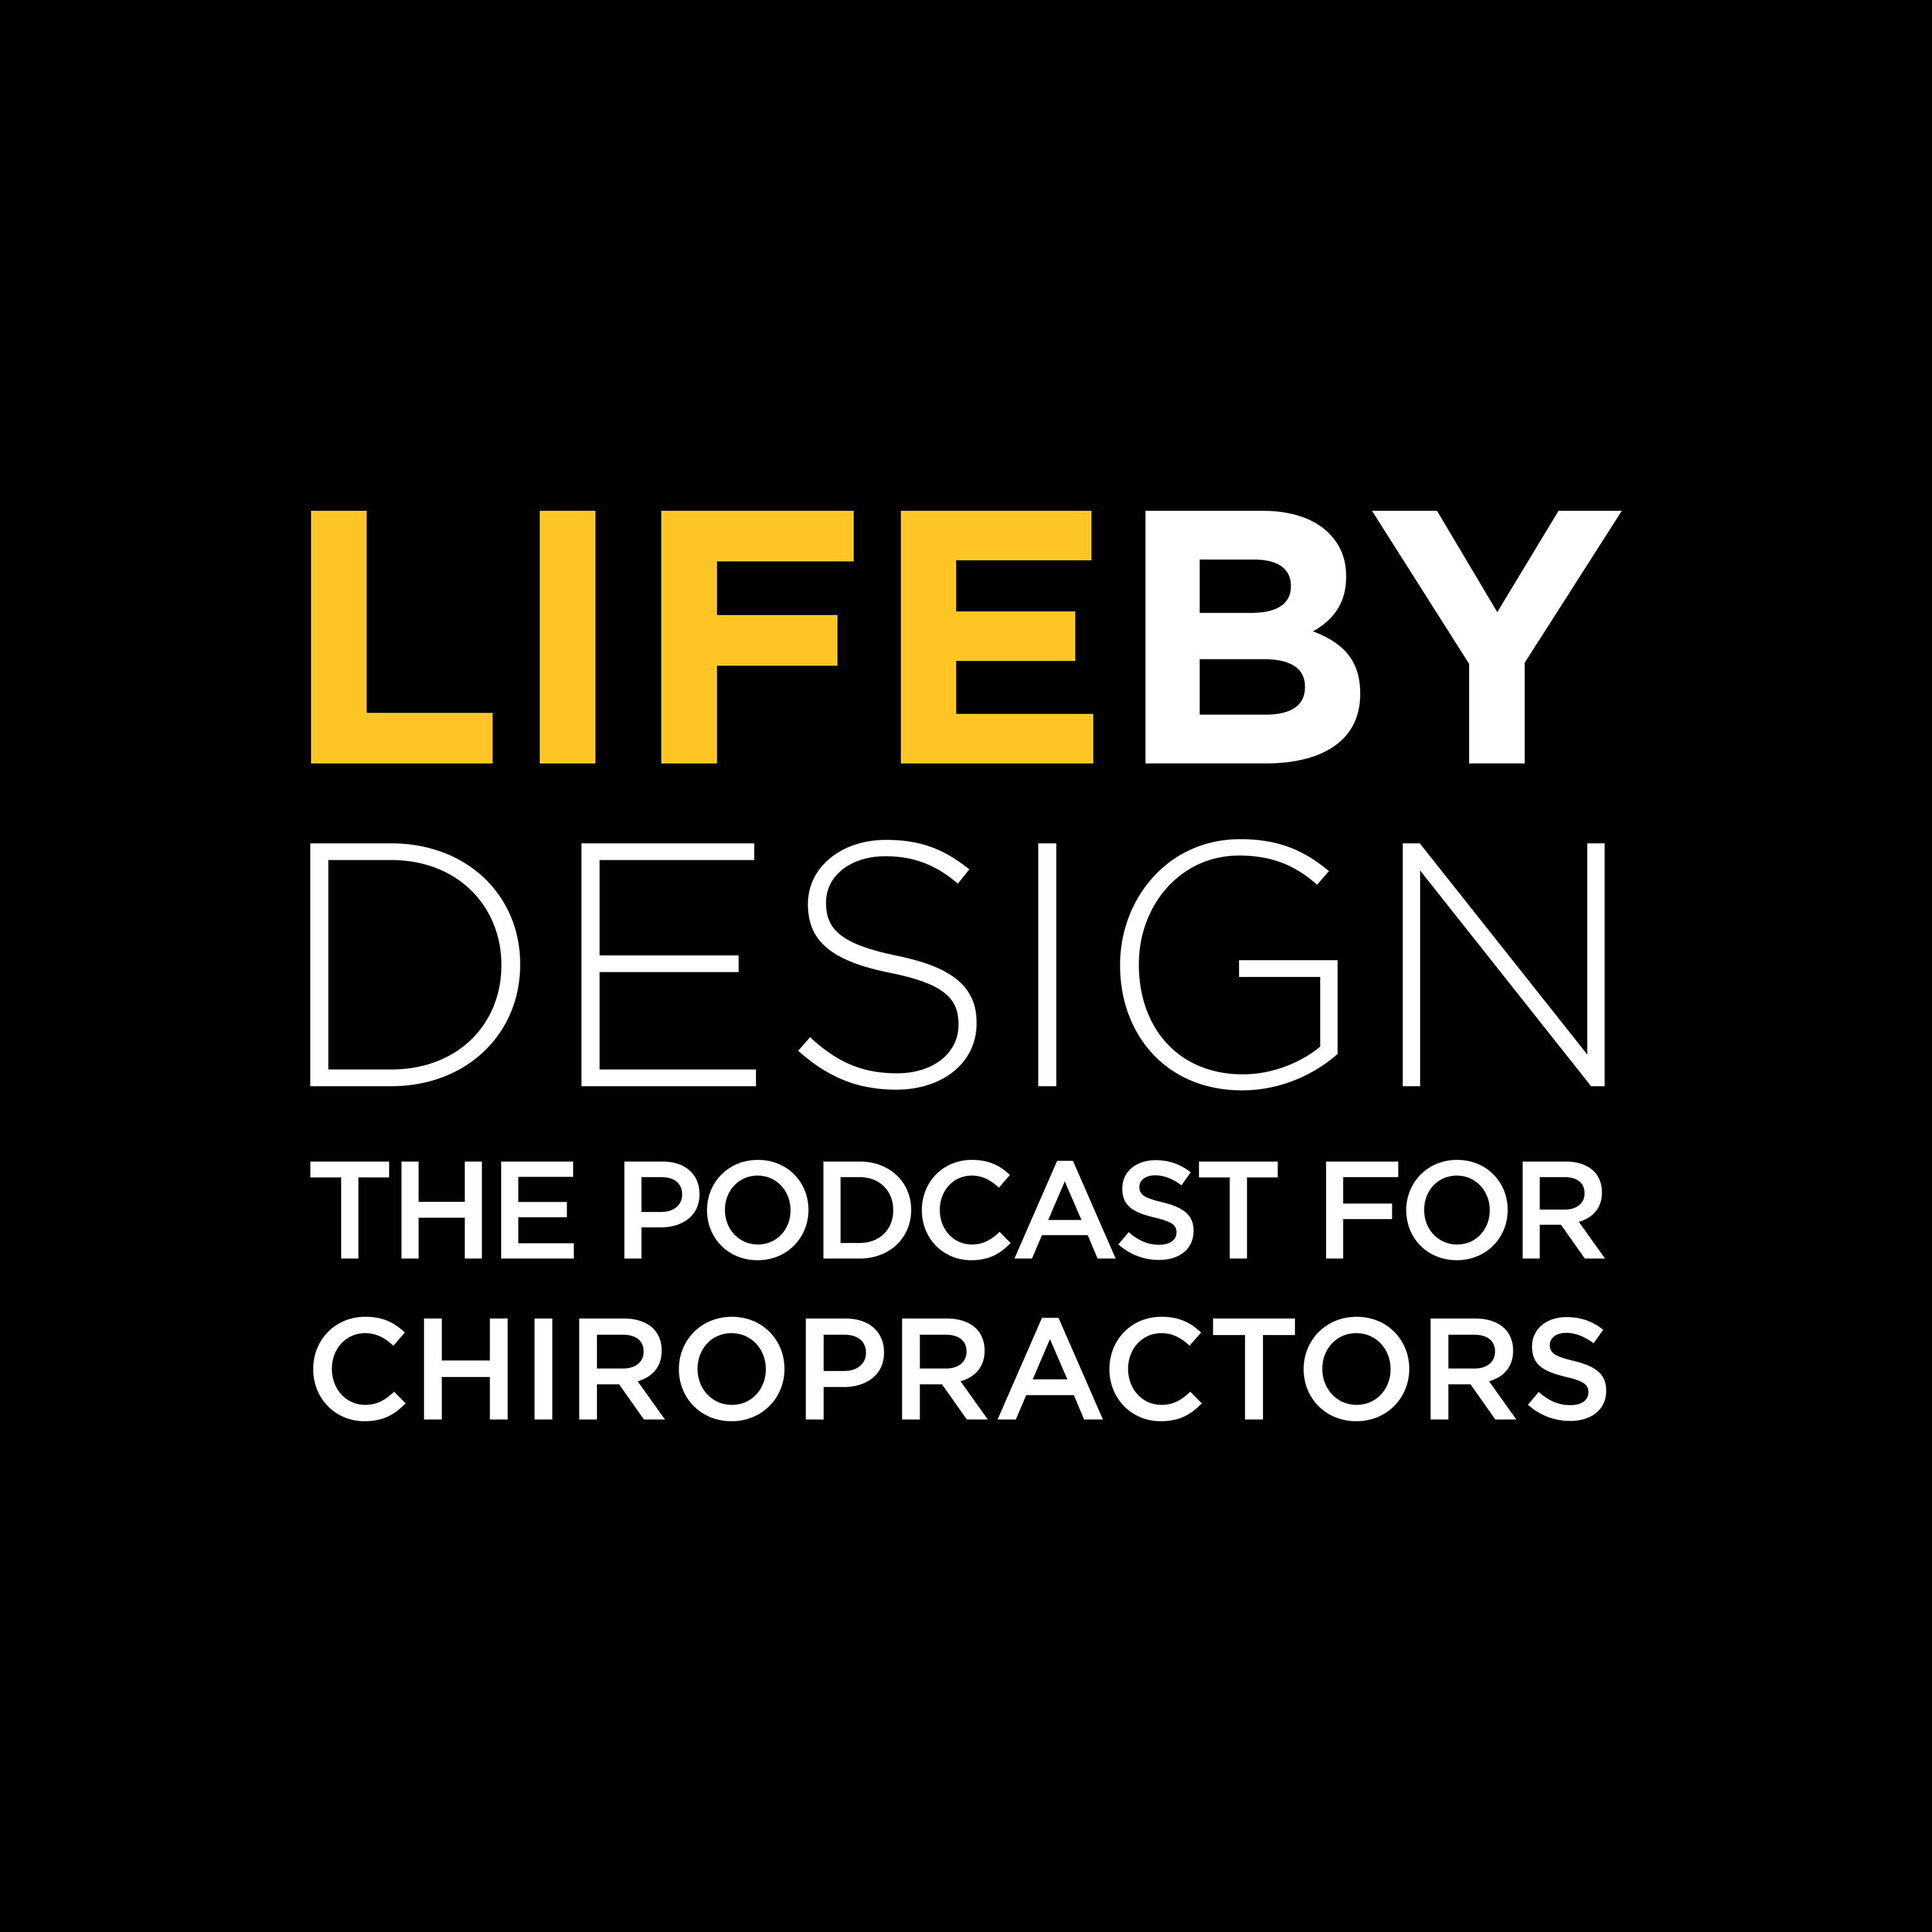 Life By Design   The Podcast For Chiropractors show art